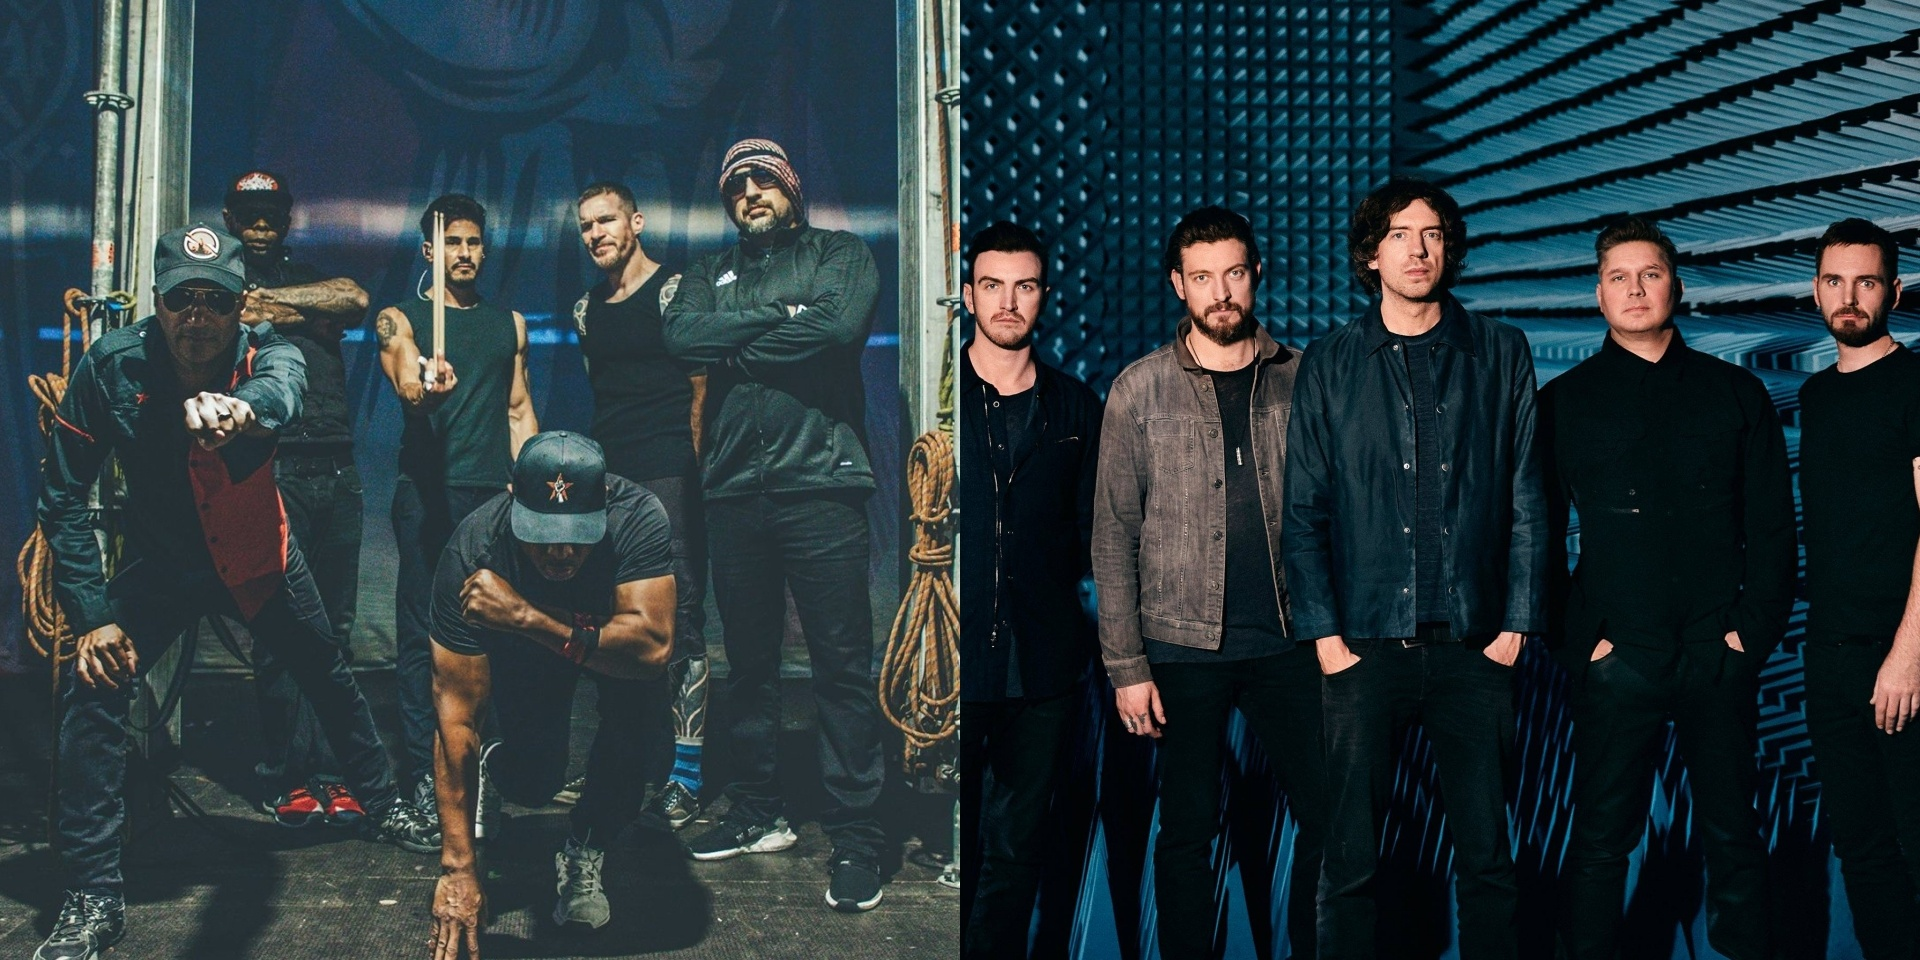 Hodgepodge Superfest 2019 announces Phase 1 line-up – Prophets of Rage, Snow Patrol and more confirmed